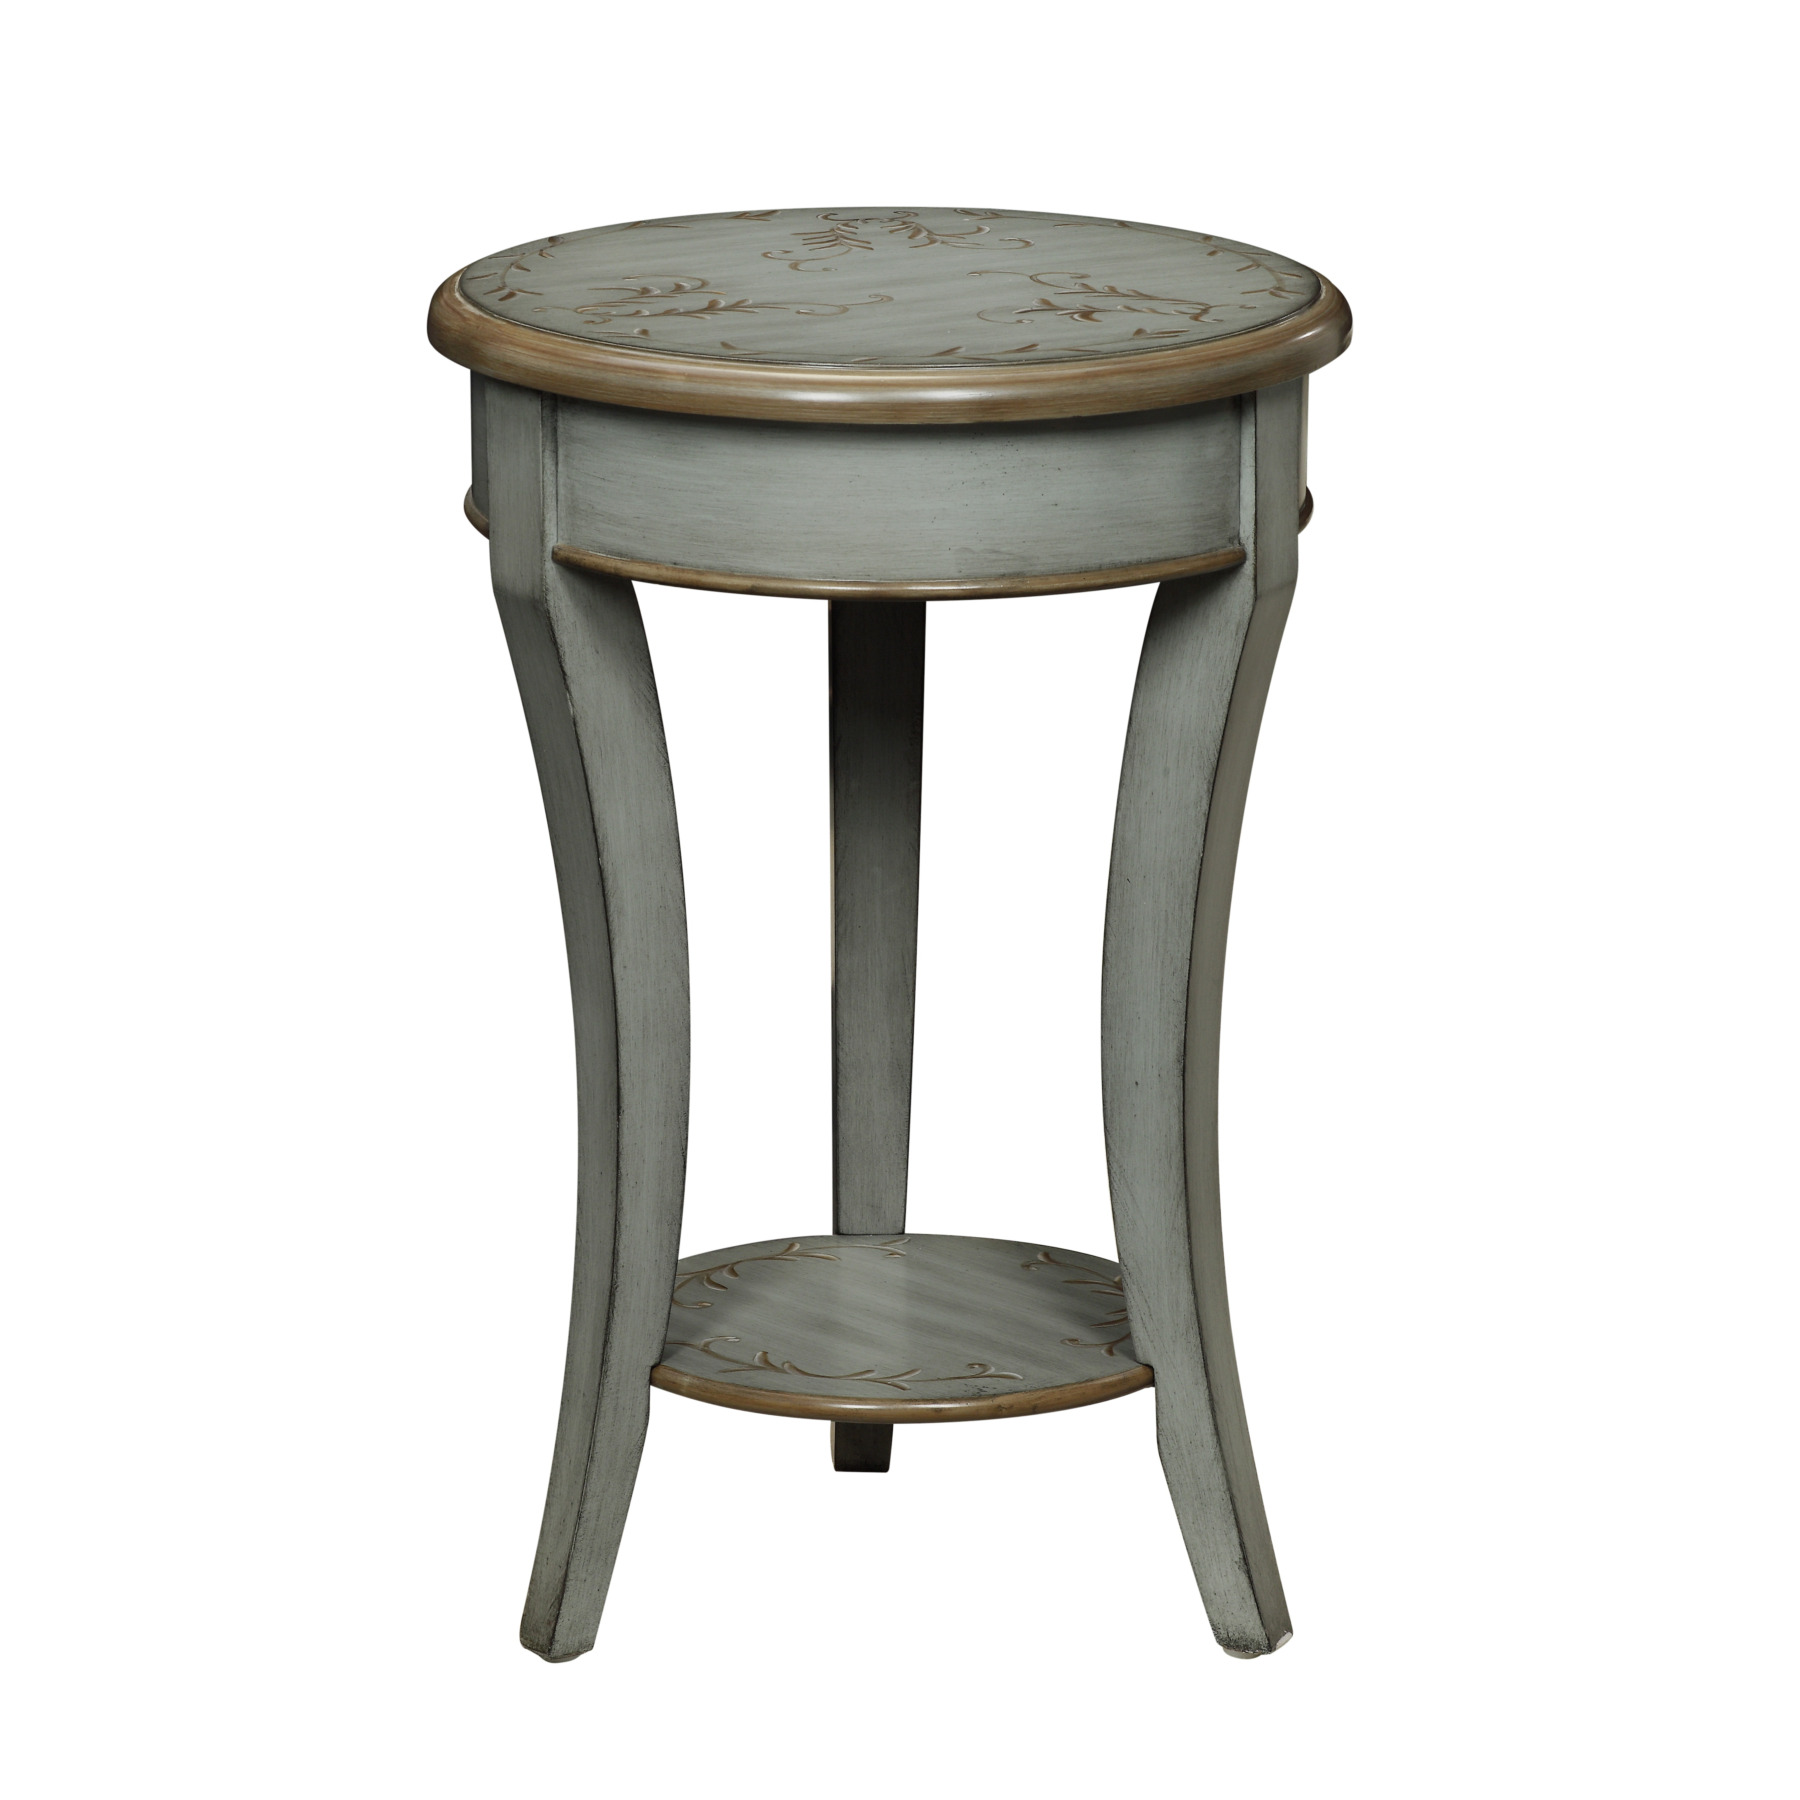 michael anthony furniture floral top greygreen round gray accent table wood target pallet end black console ikea folding chair leick corner computer desk linen covers chaise